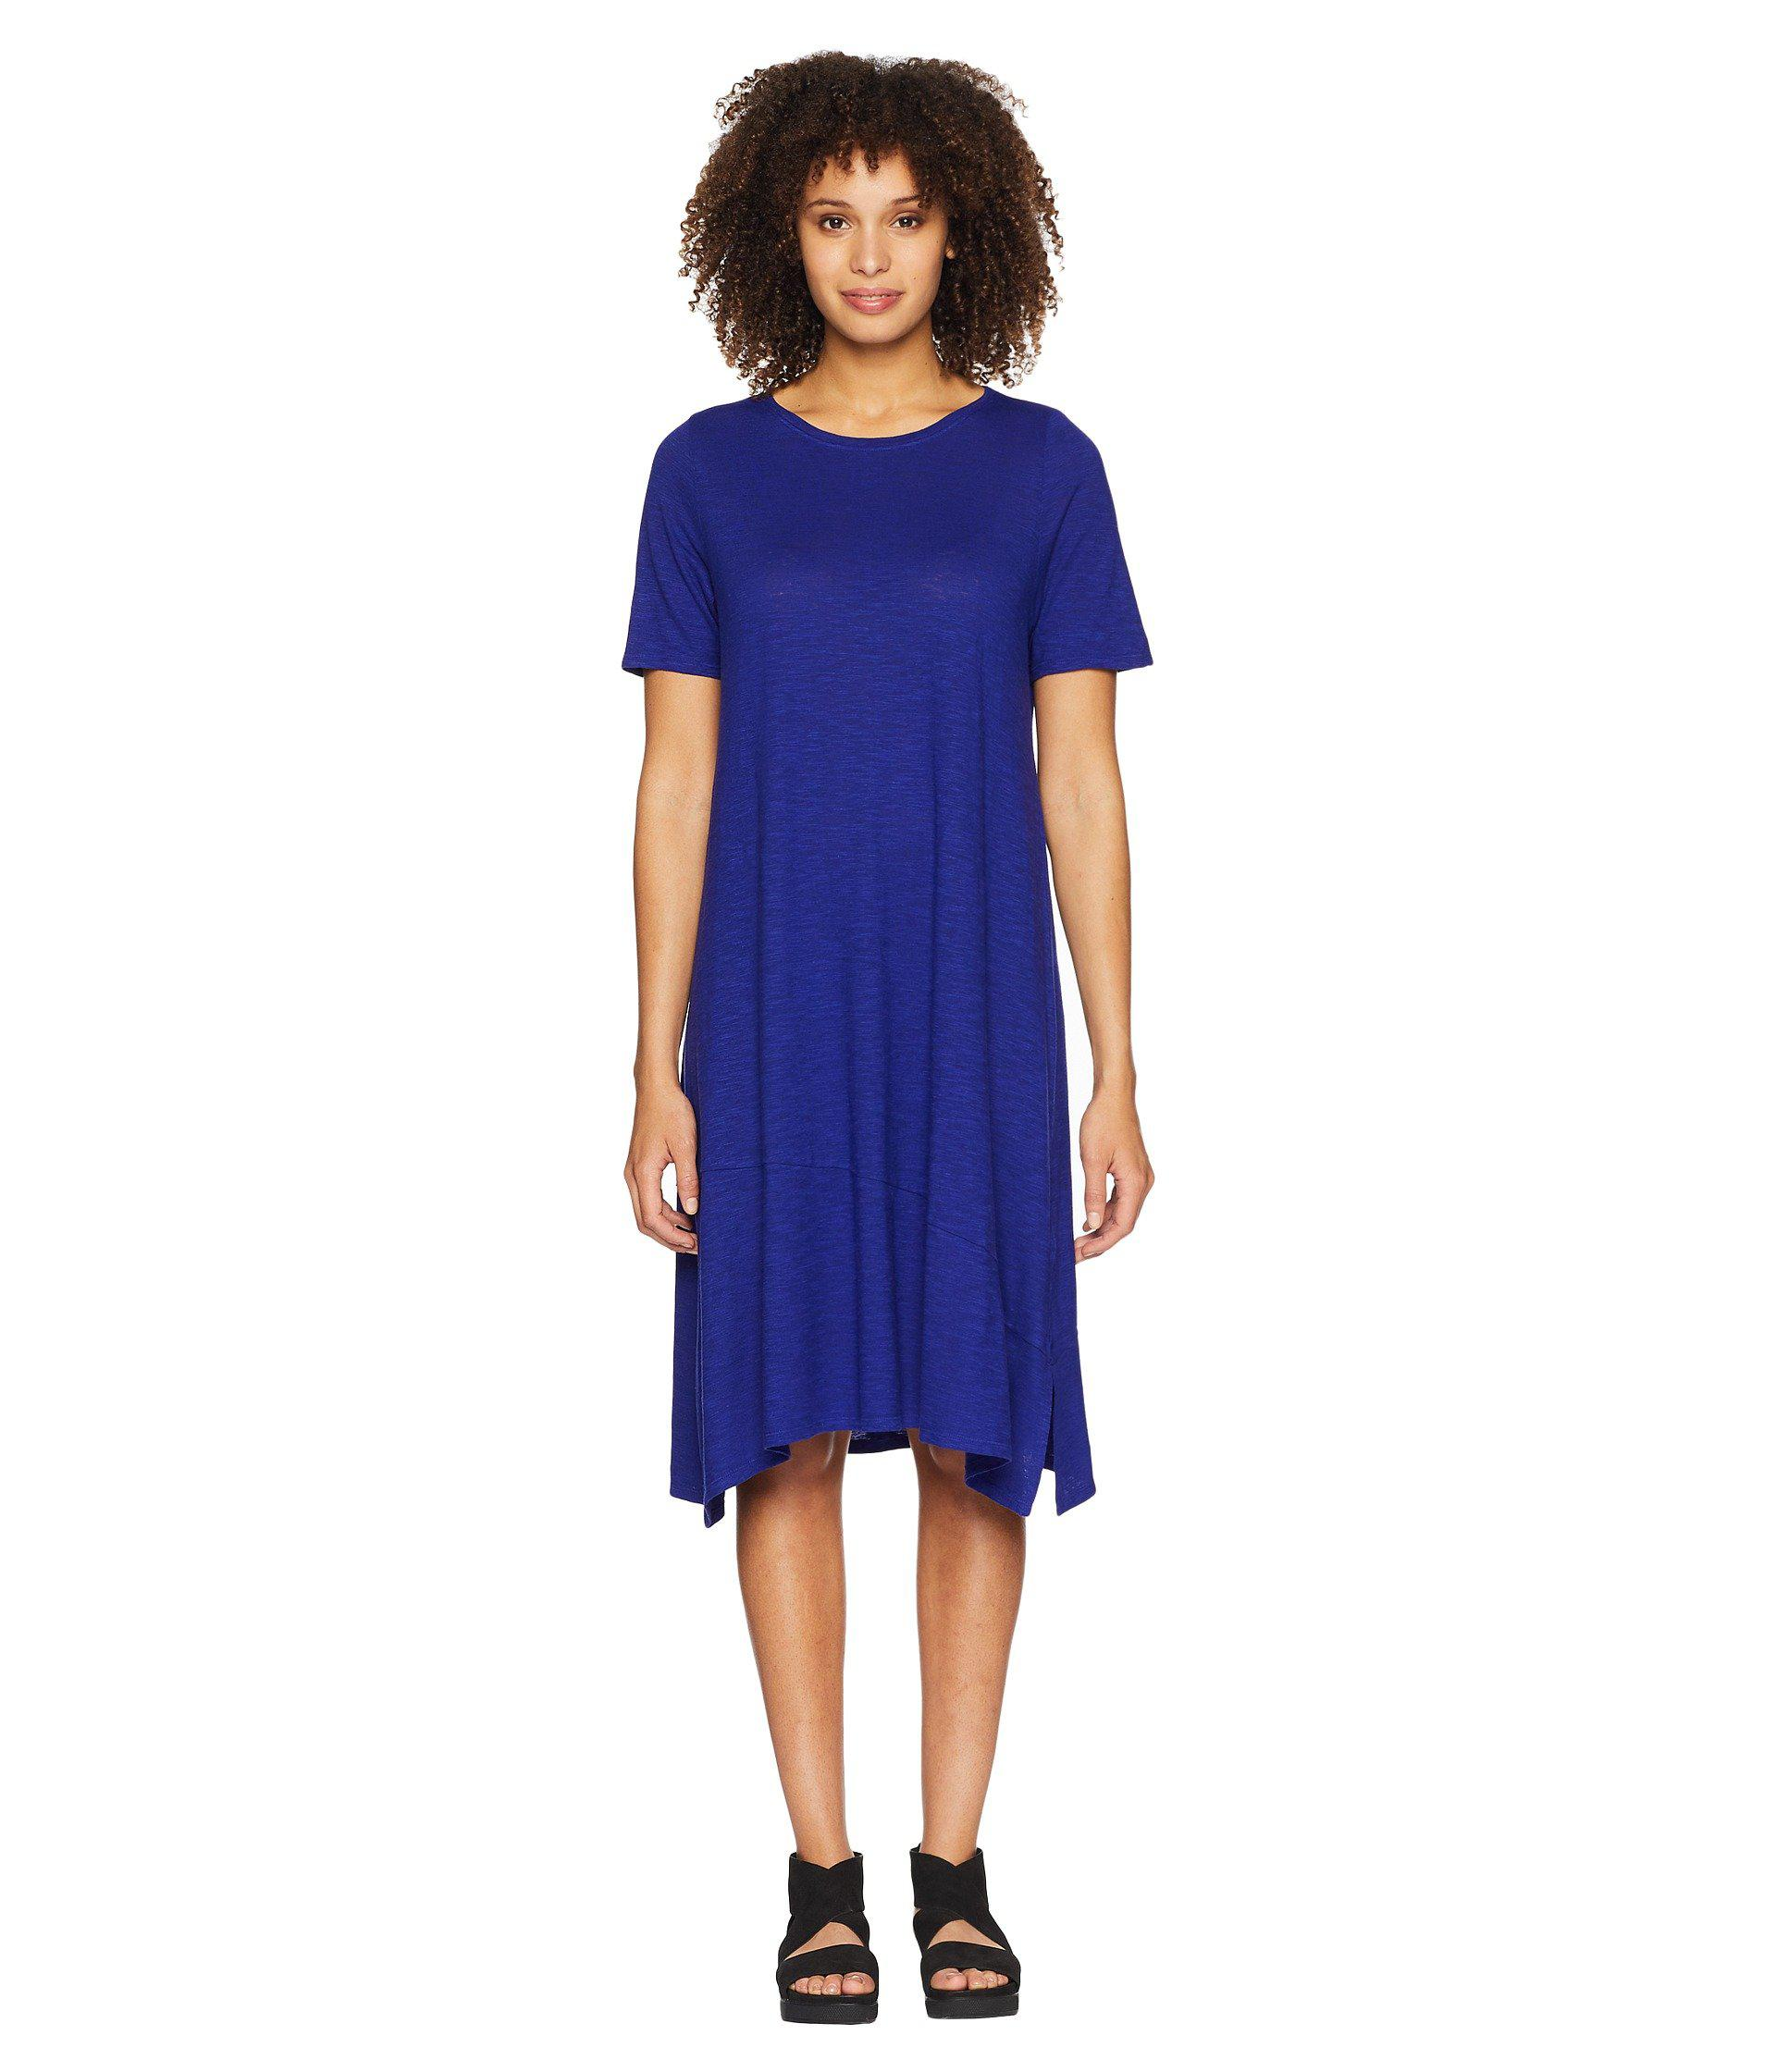 61e744c7e97f96 Lyst - Eileen Fisher Jewel Neck Dress in Blue - Save 50%